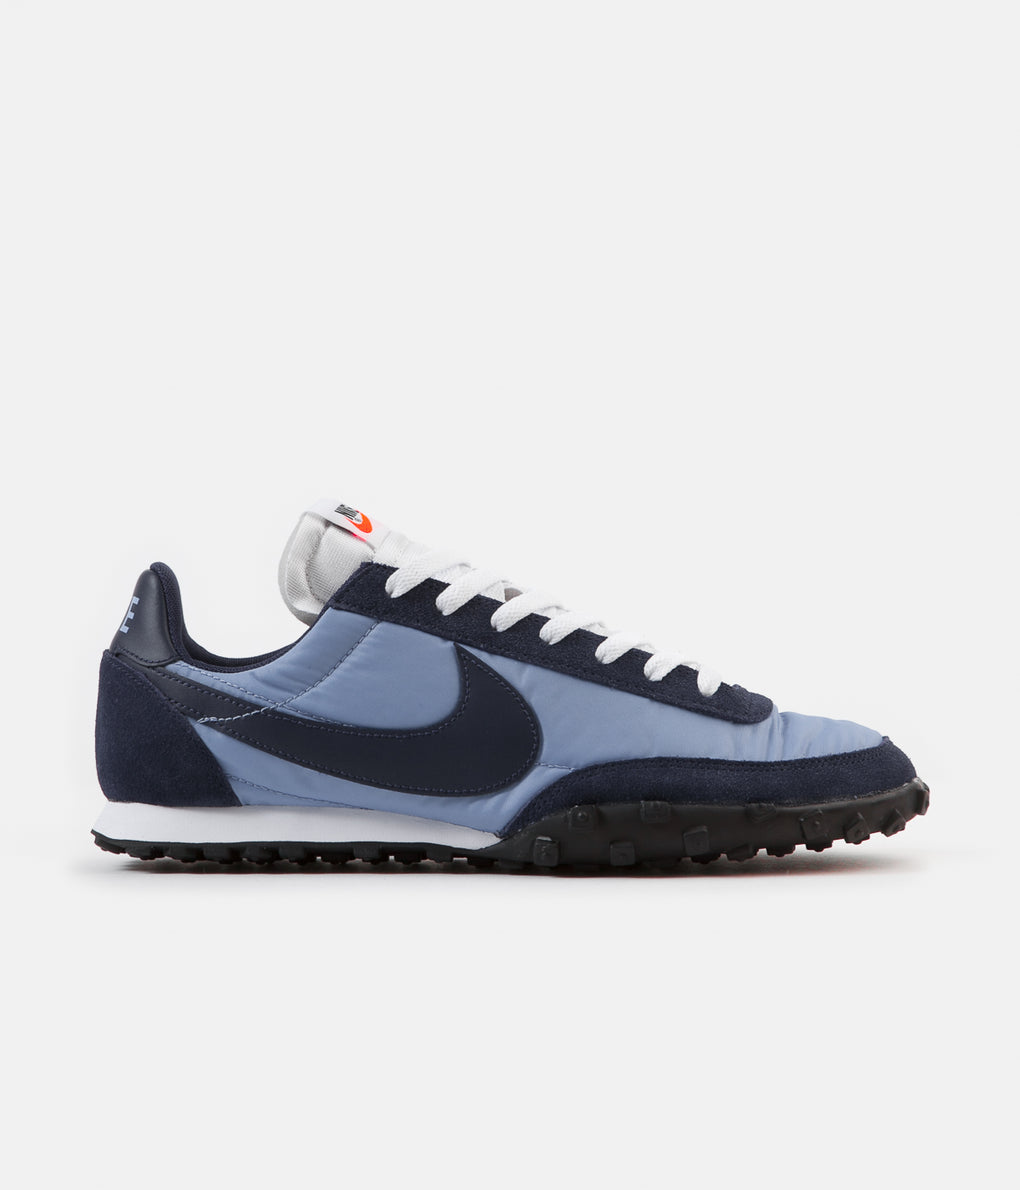 Nike Waffle Racer Shoes - Light Blue / Midnight Navy - Midnight Navy